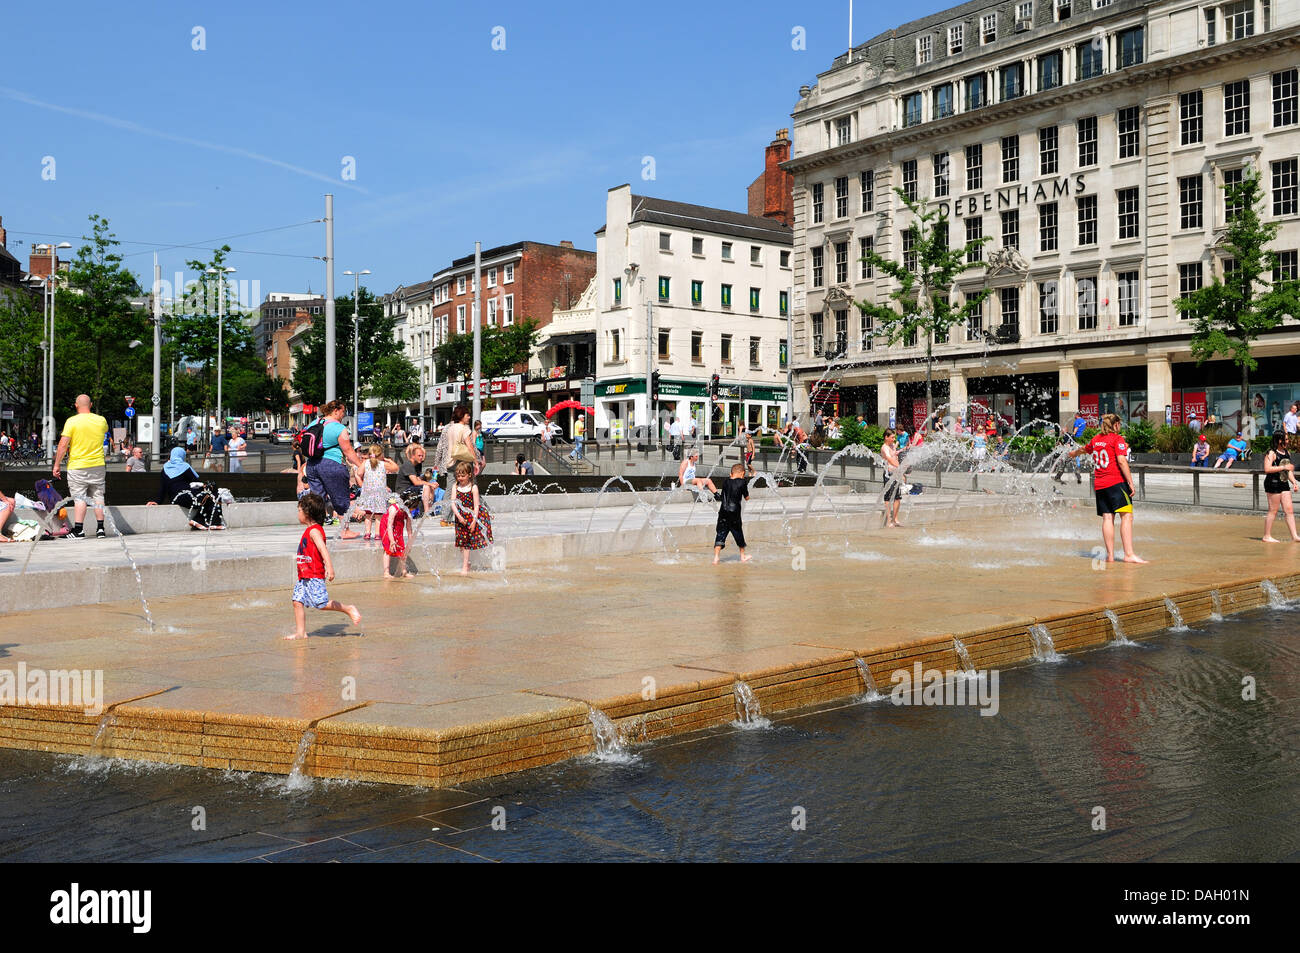 Nottingham 13Th July 2013.People keeping cool during heat wave in the city center. - Stock Image